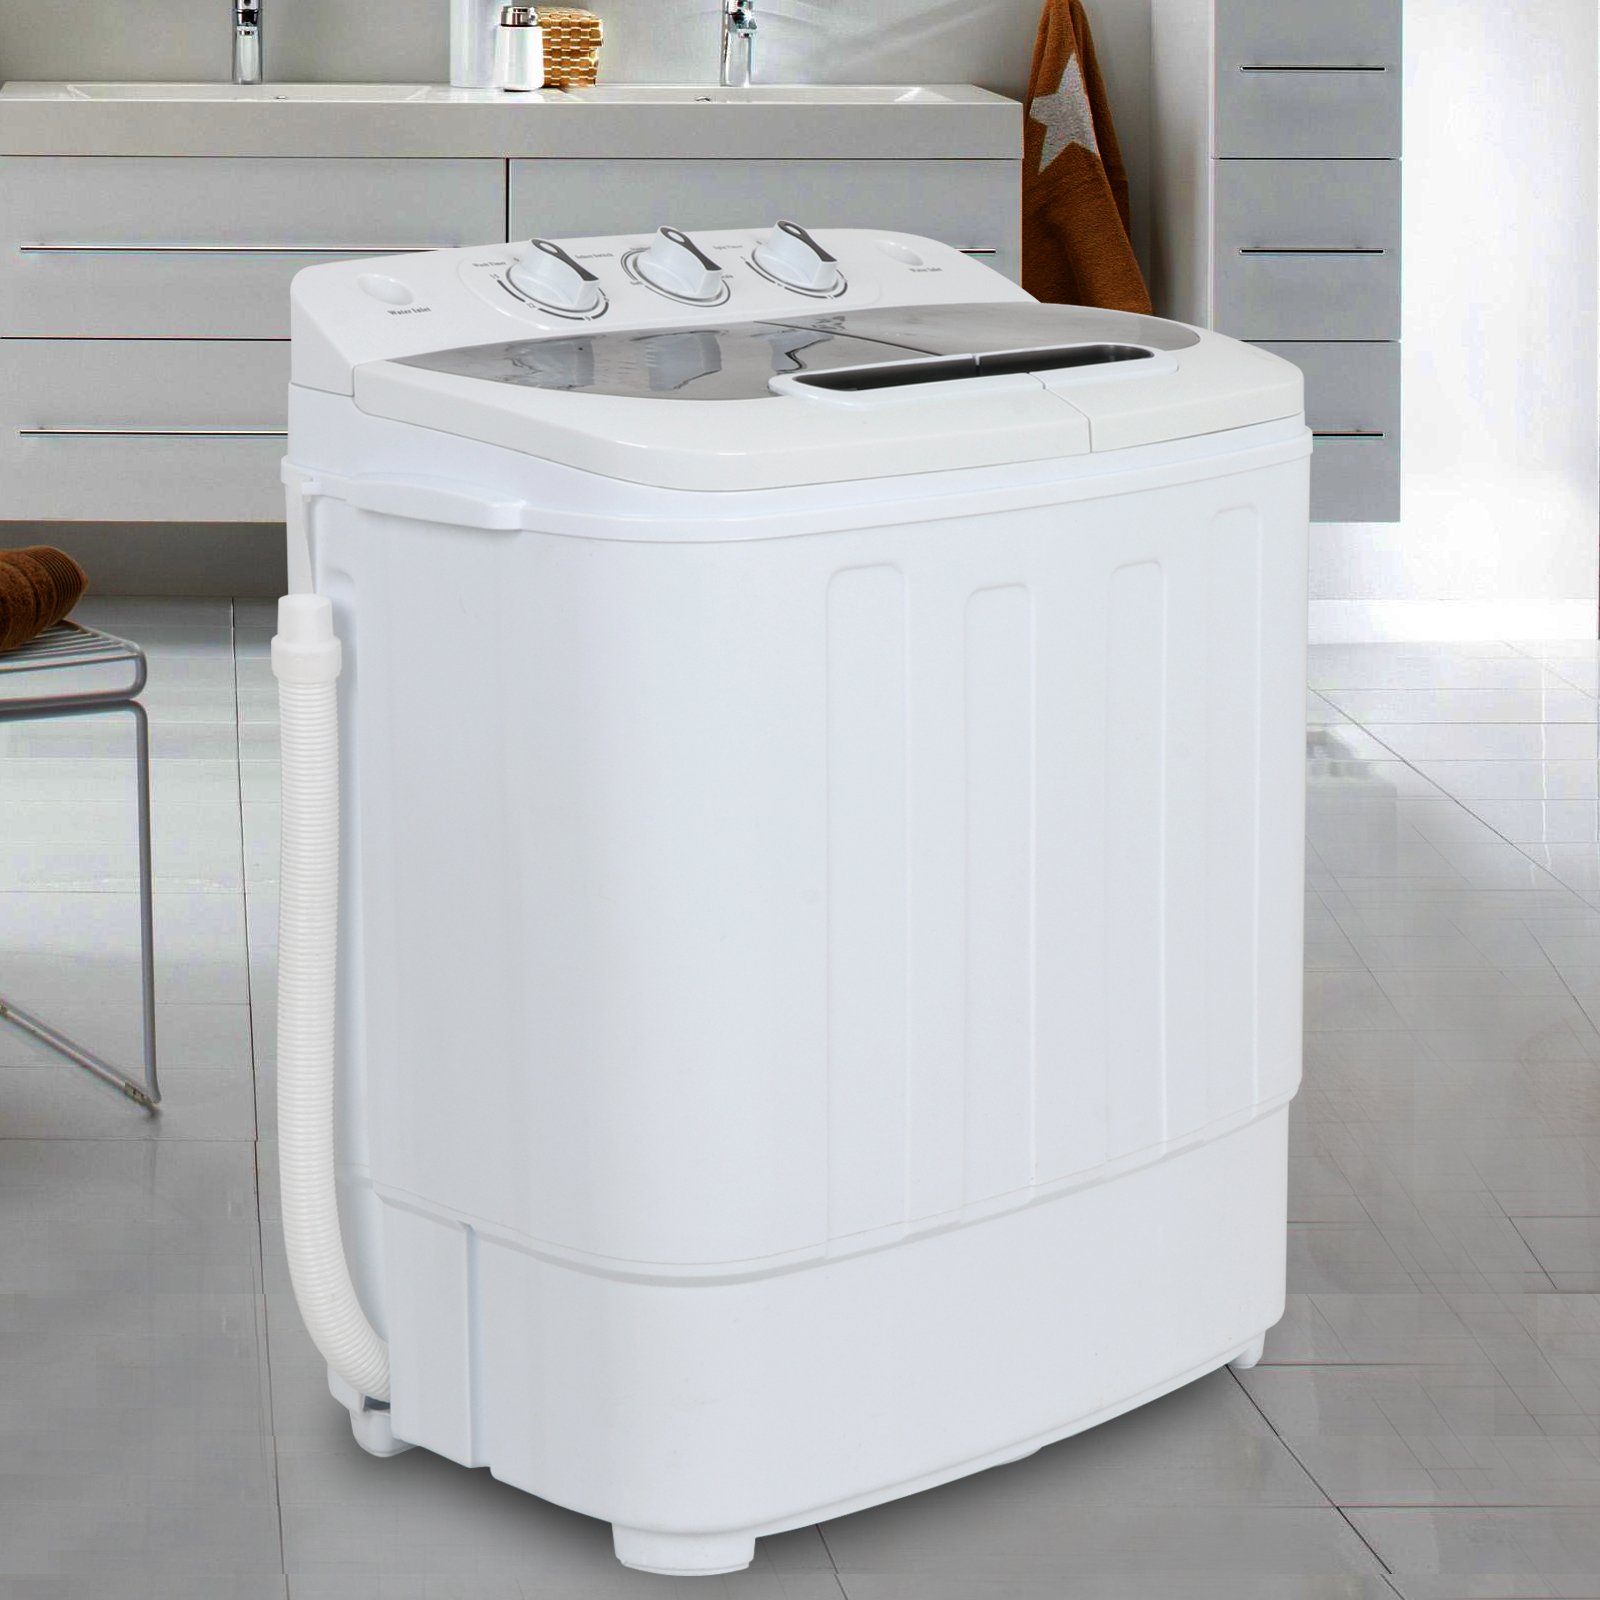 ZENY Portable Mini Twin Tub Washing Machine 13lbs Capacity with Spin Cycle Dryer, Lightweight For Apartments, Dorm Rooms